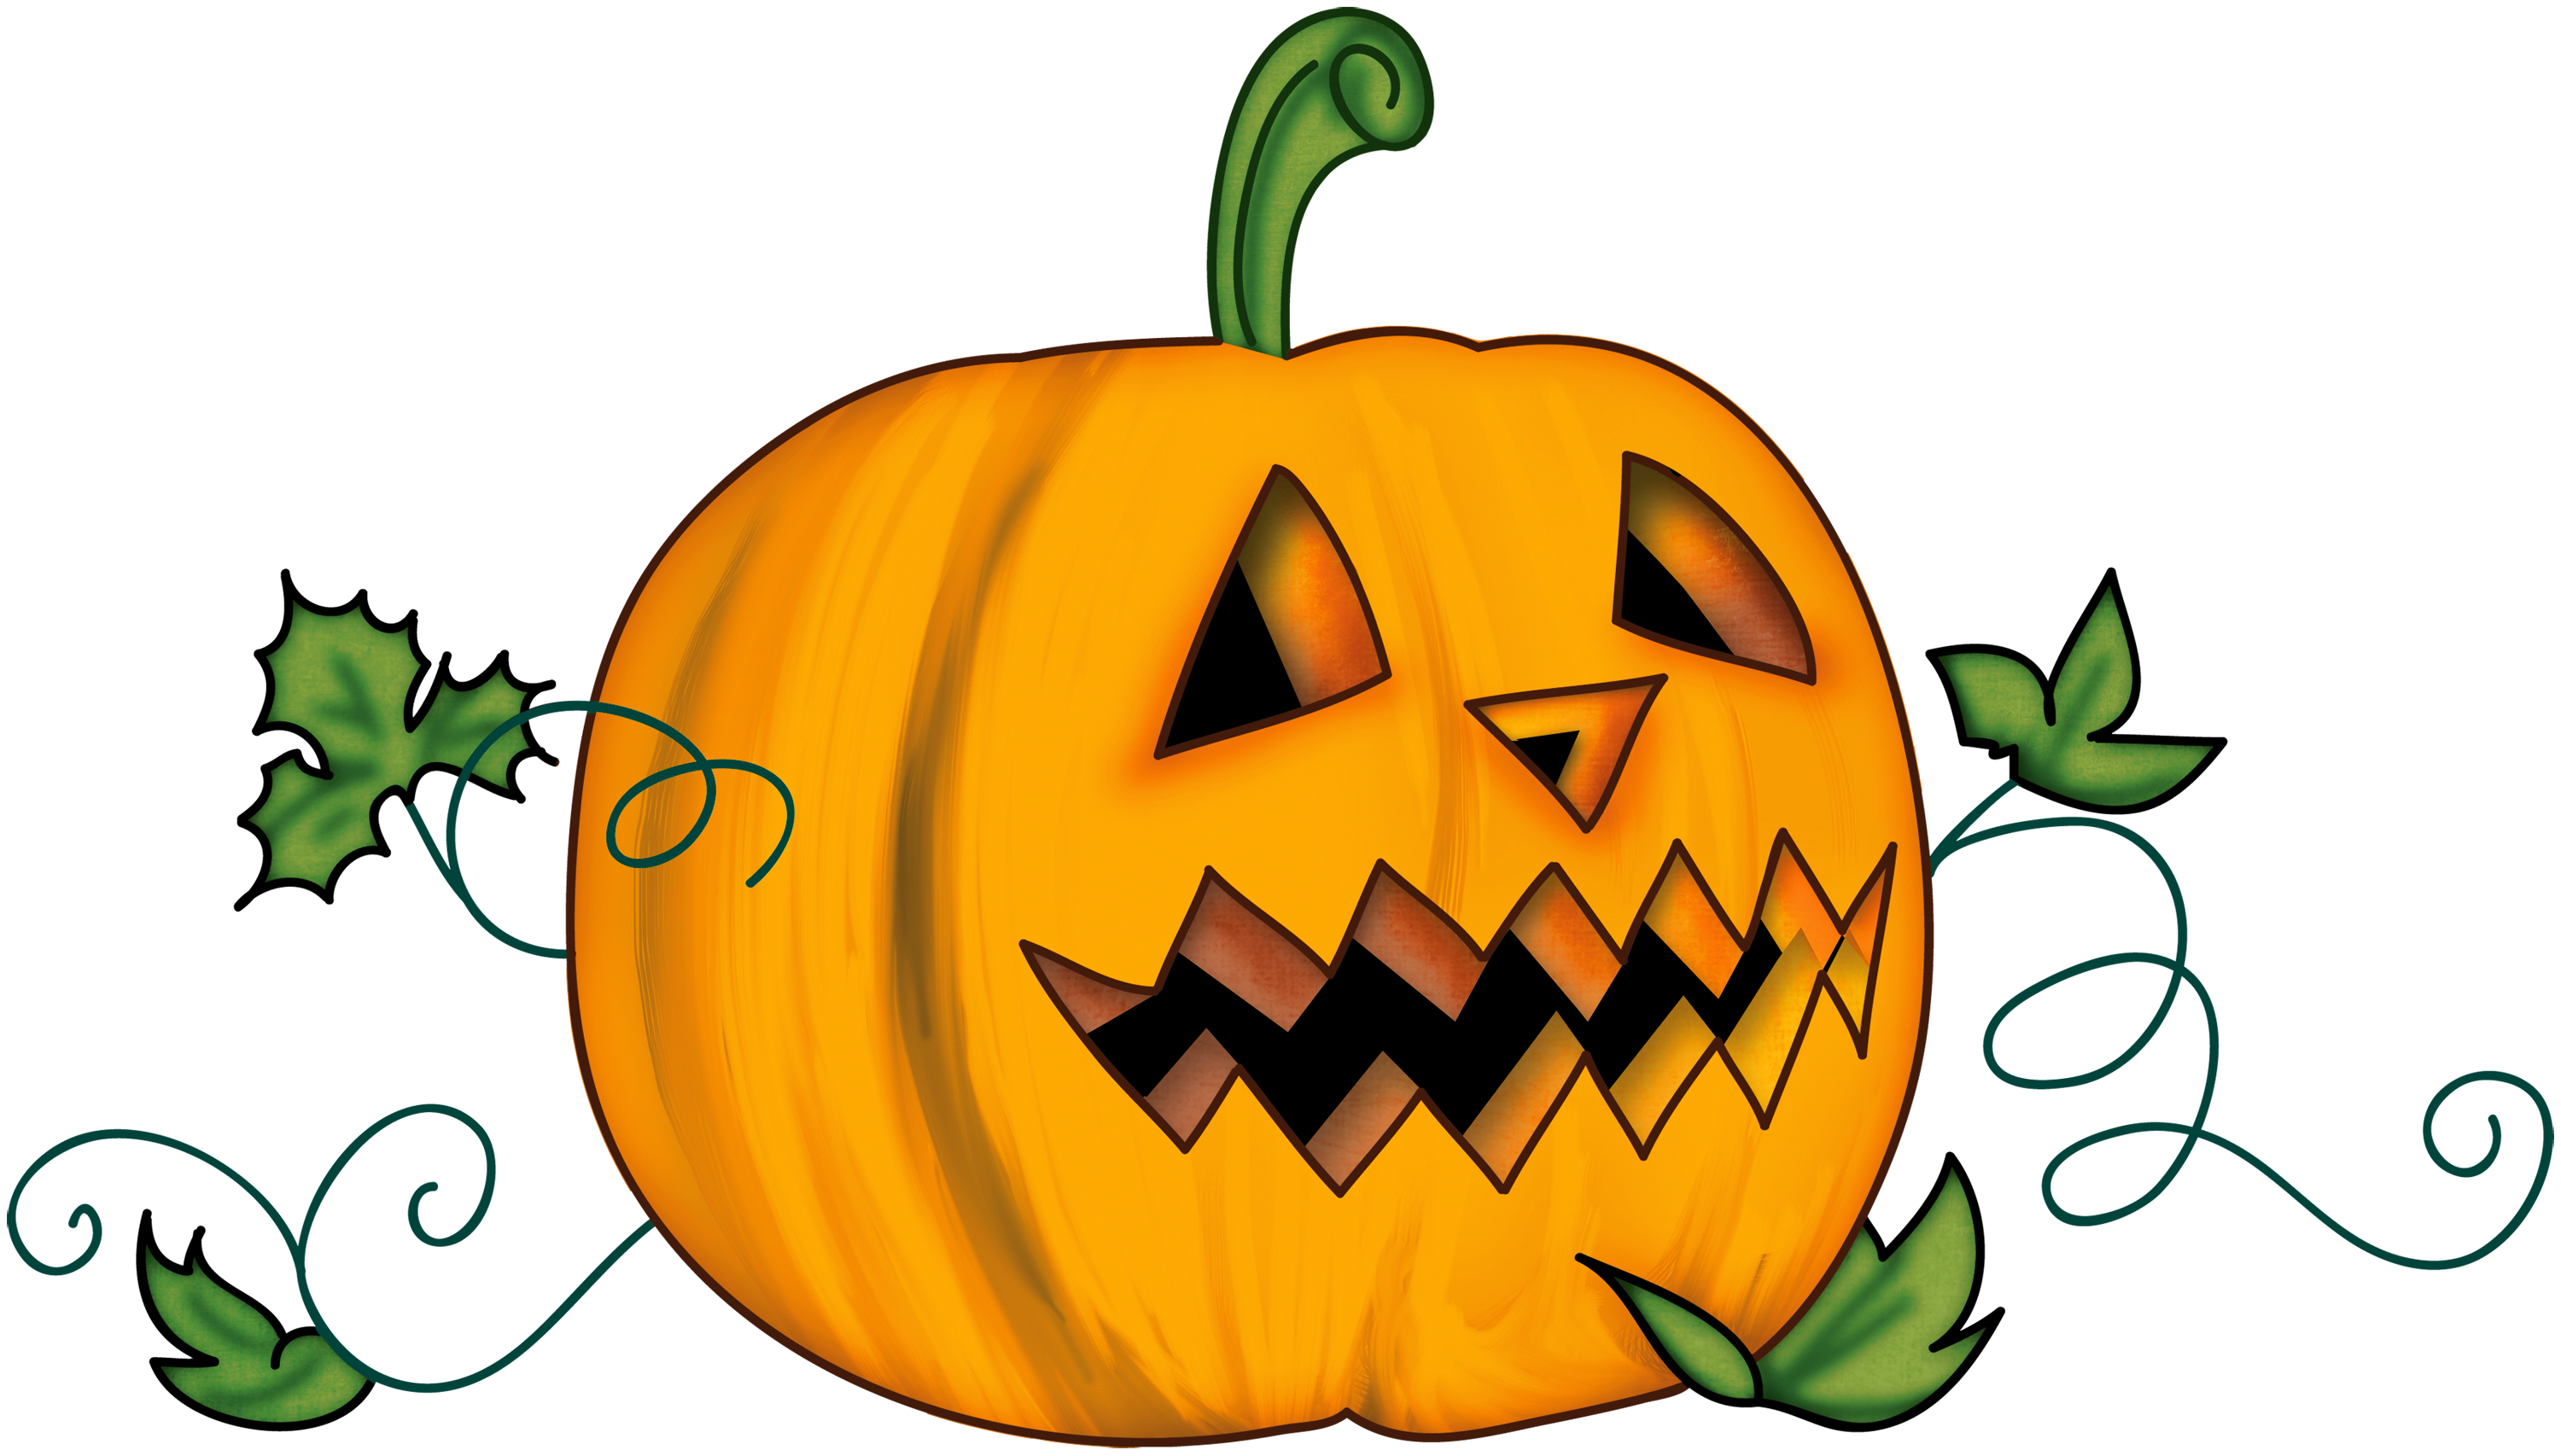 Scary clipart scary pumpkin patch. Halloween creepy gallery yopriceville